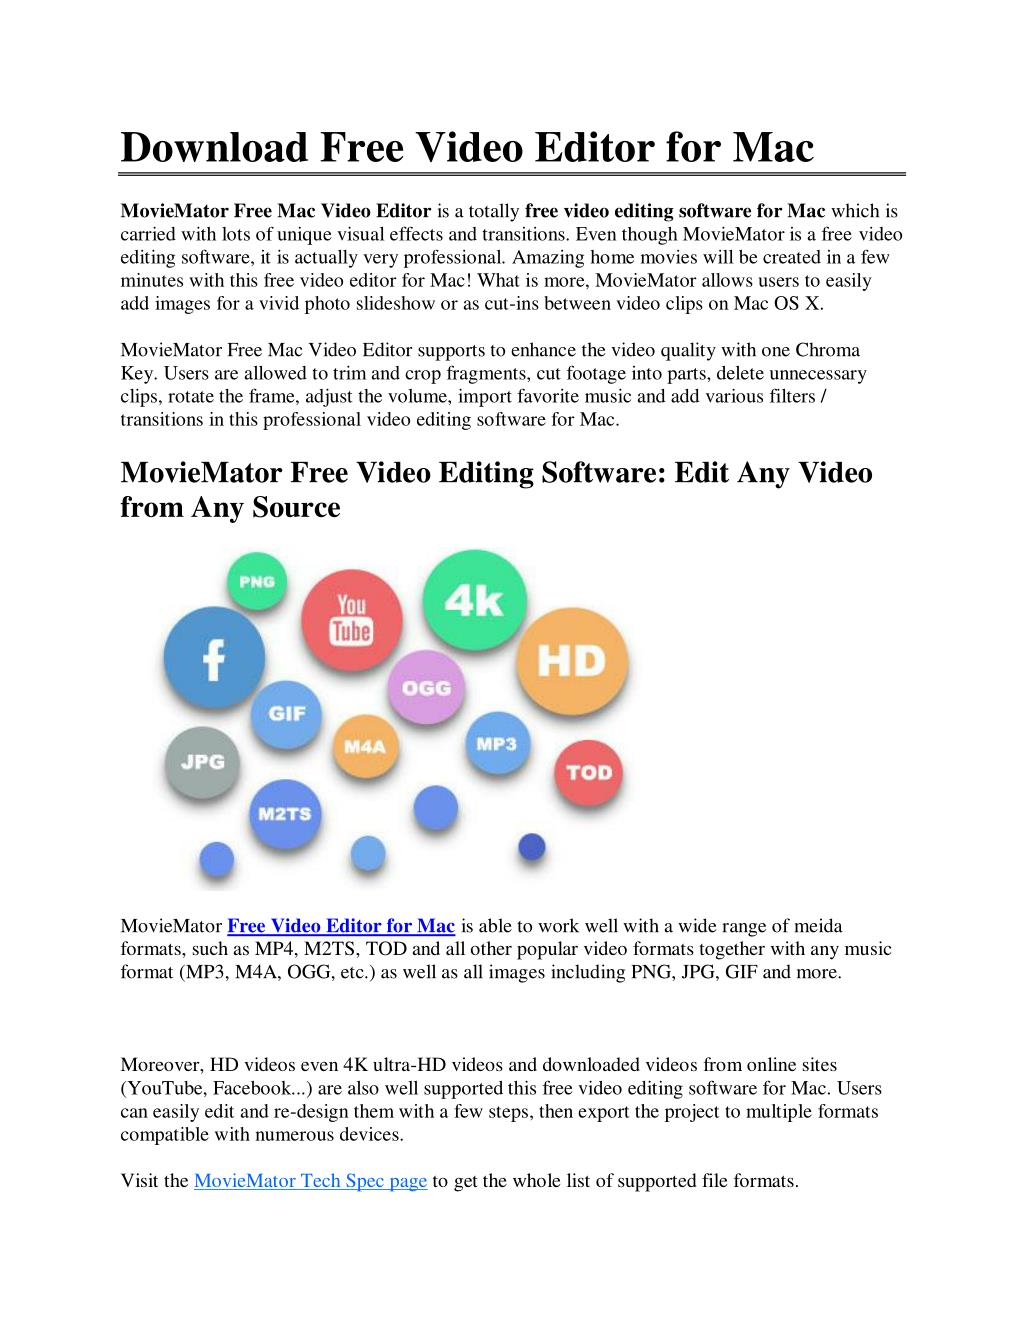 Quik – free video editor for photos, clips, music 5. 0. 3. 4003.